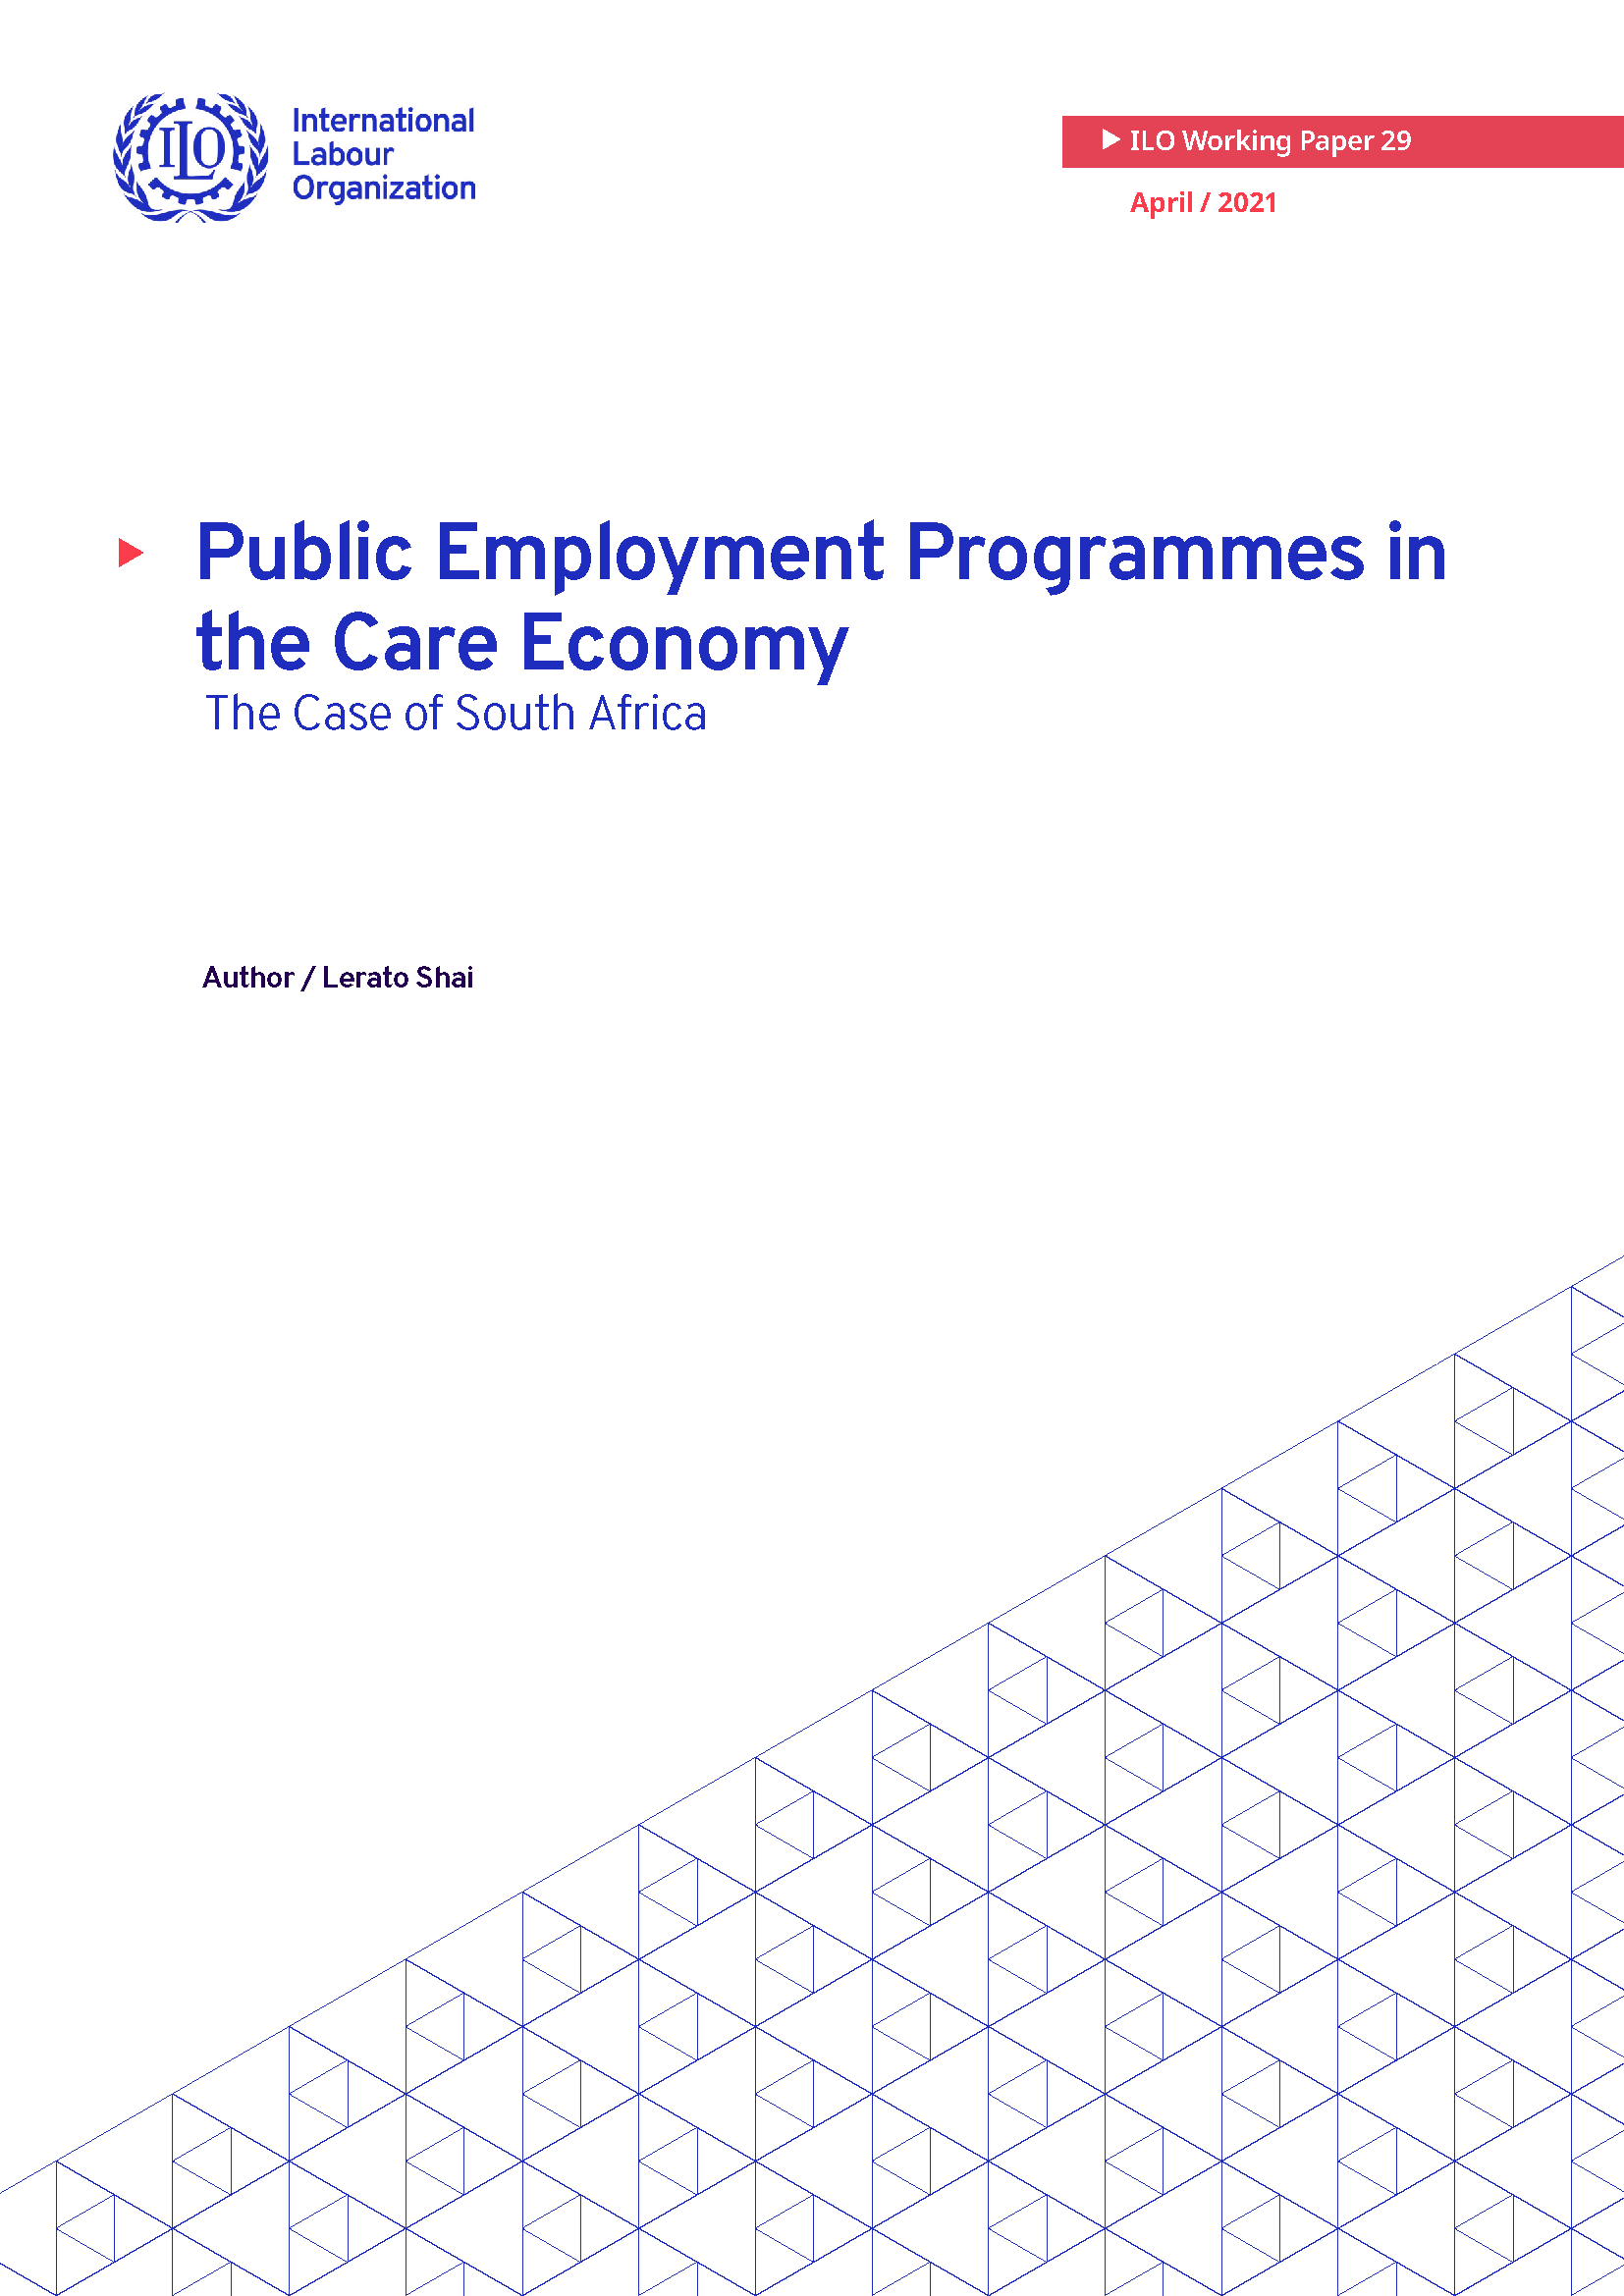 Public Employment Programmes in the Care Economy - The Case of South Africa